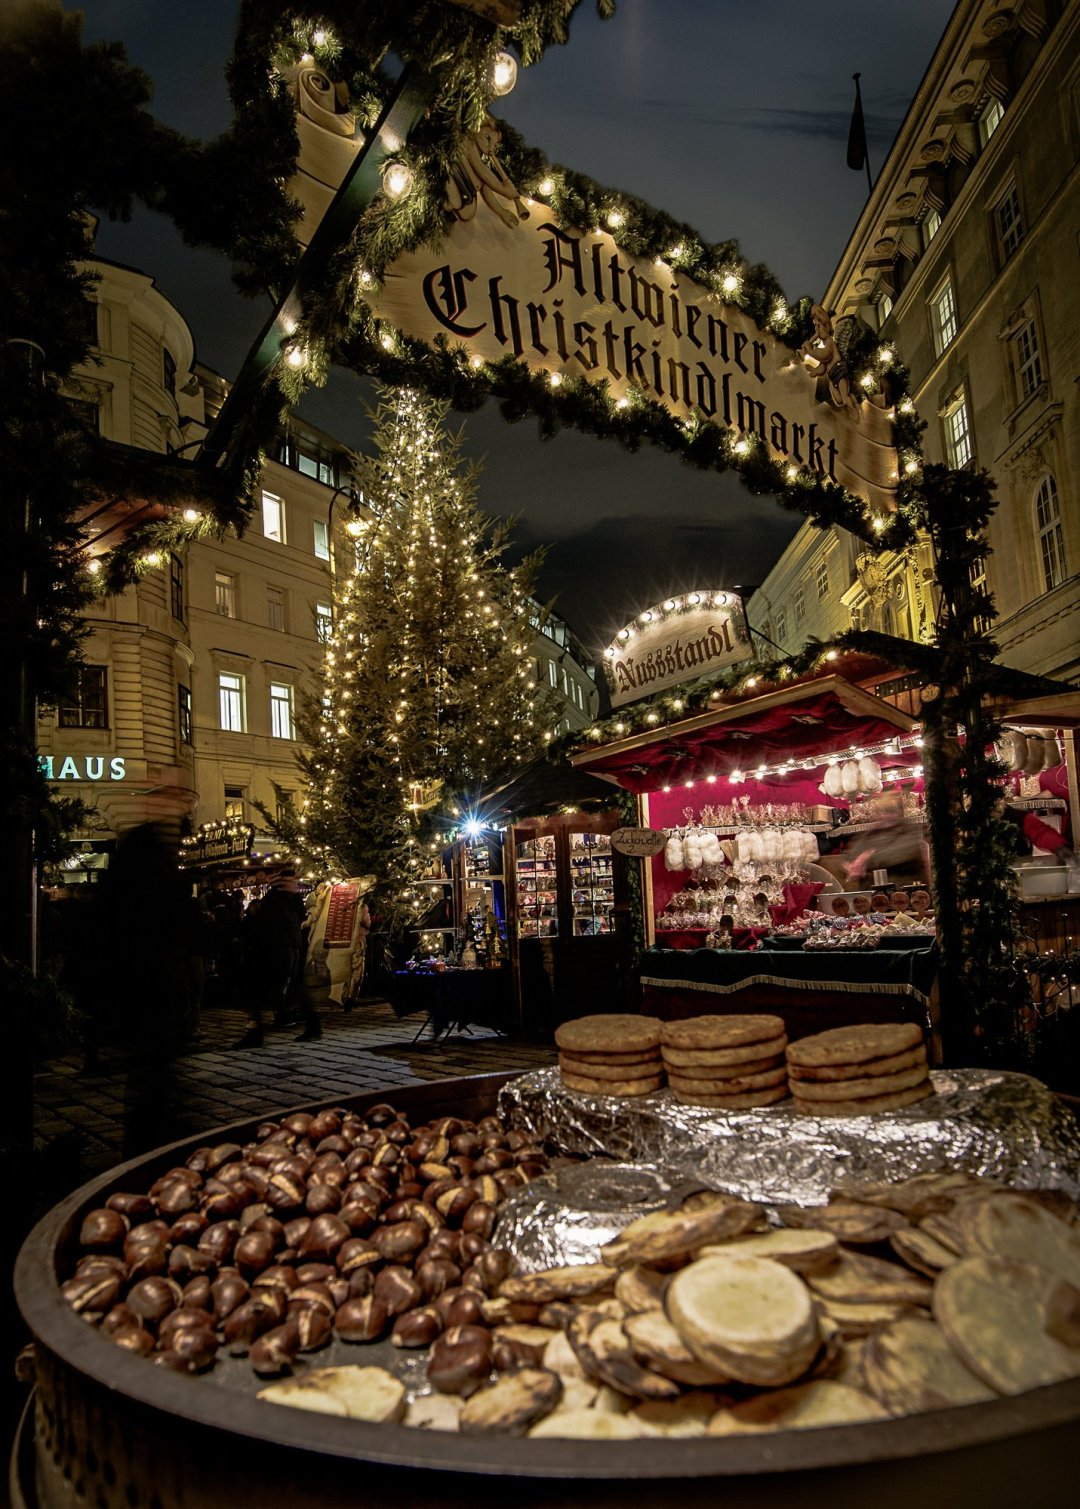 Old Viennese Christmas Market at night